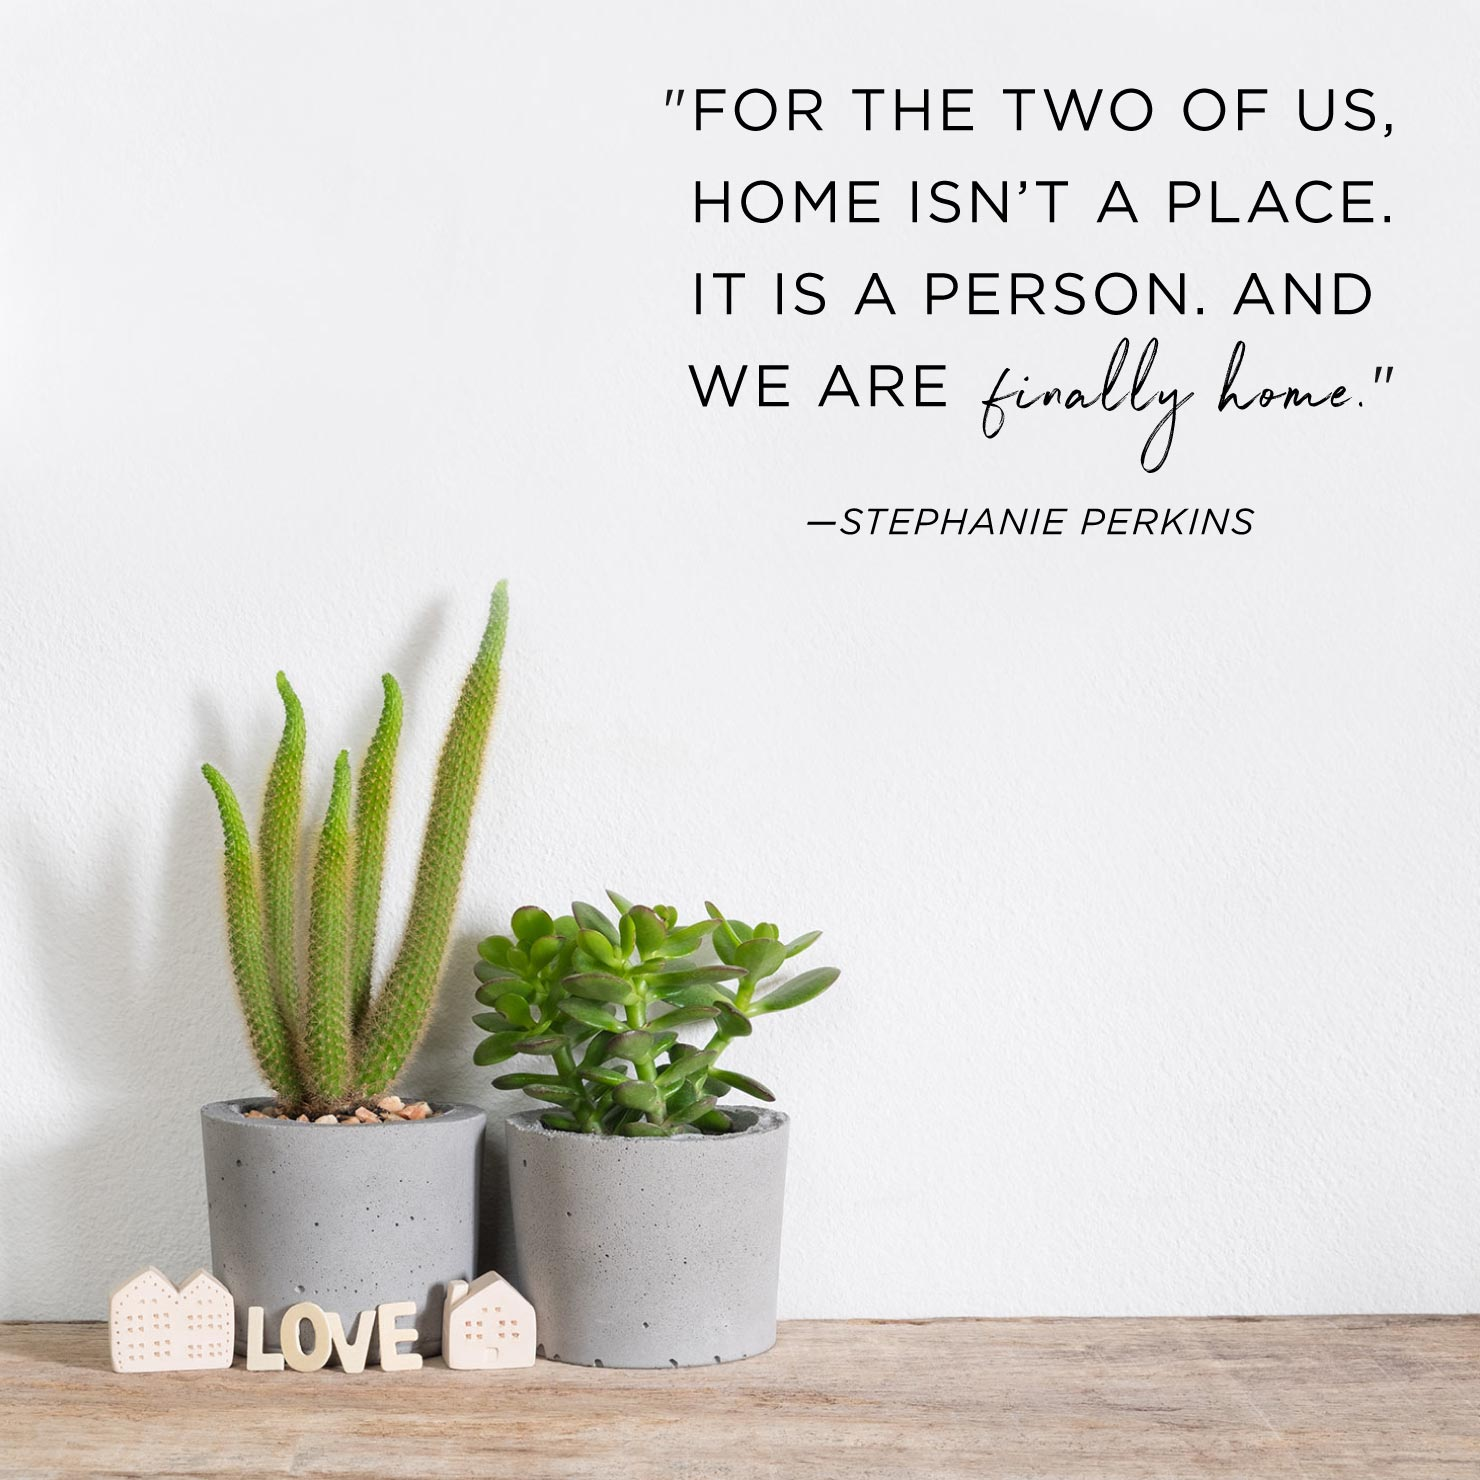 Quote above background image: For the two of us, home isn't a place. It is a person. And we are finally home. - Stephanie Perkins